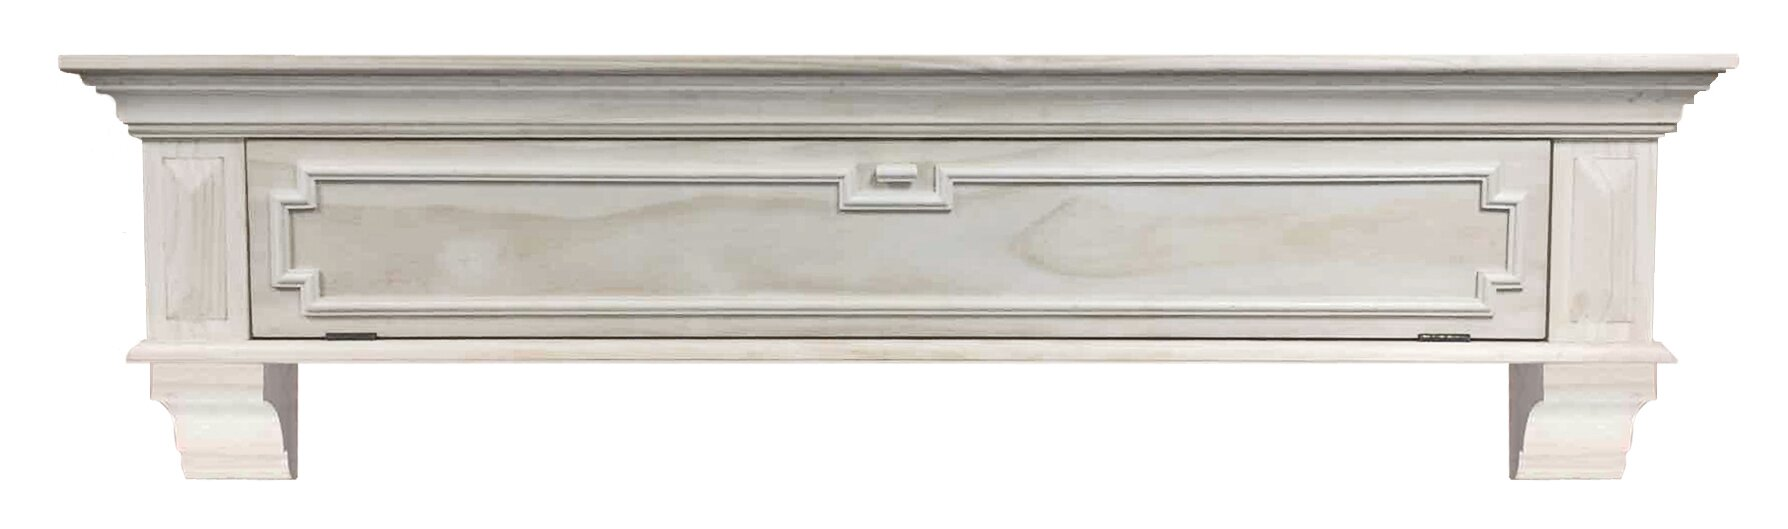 pearl mantels thomas drop front storage fireplace mantel shelf